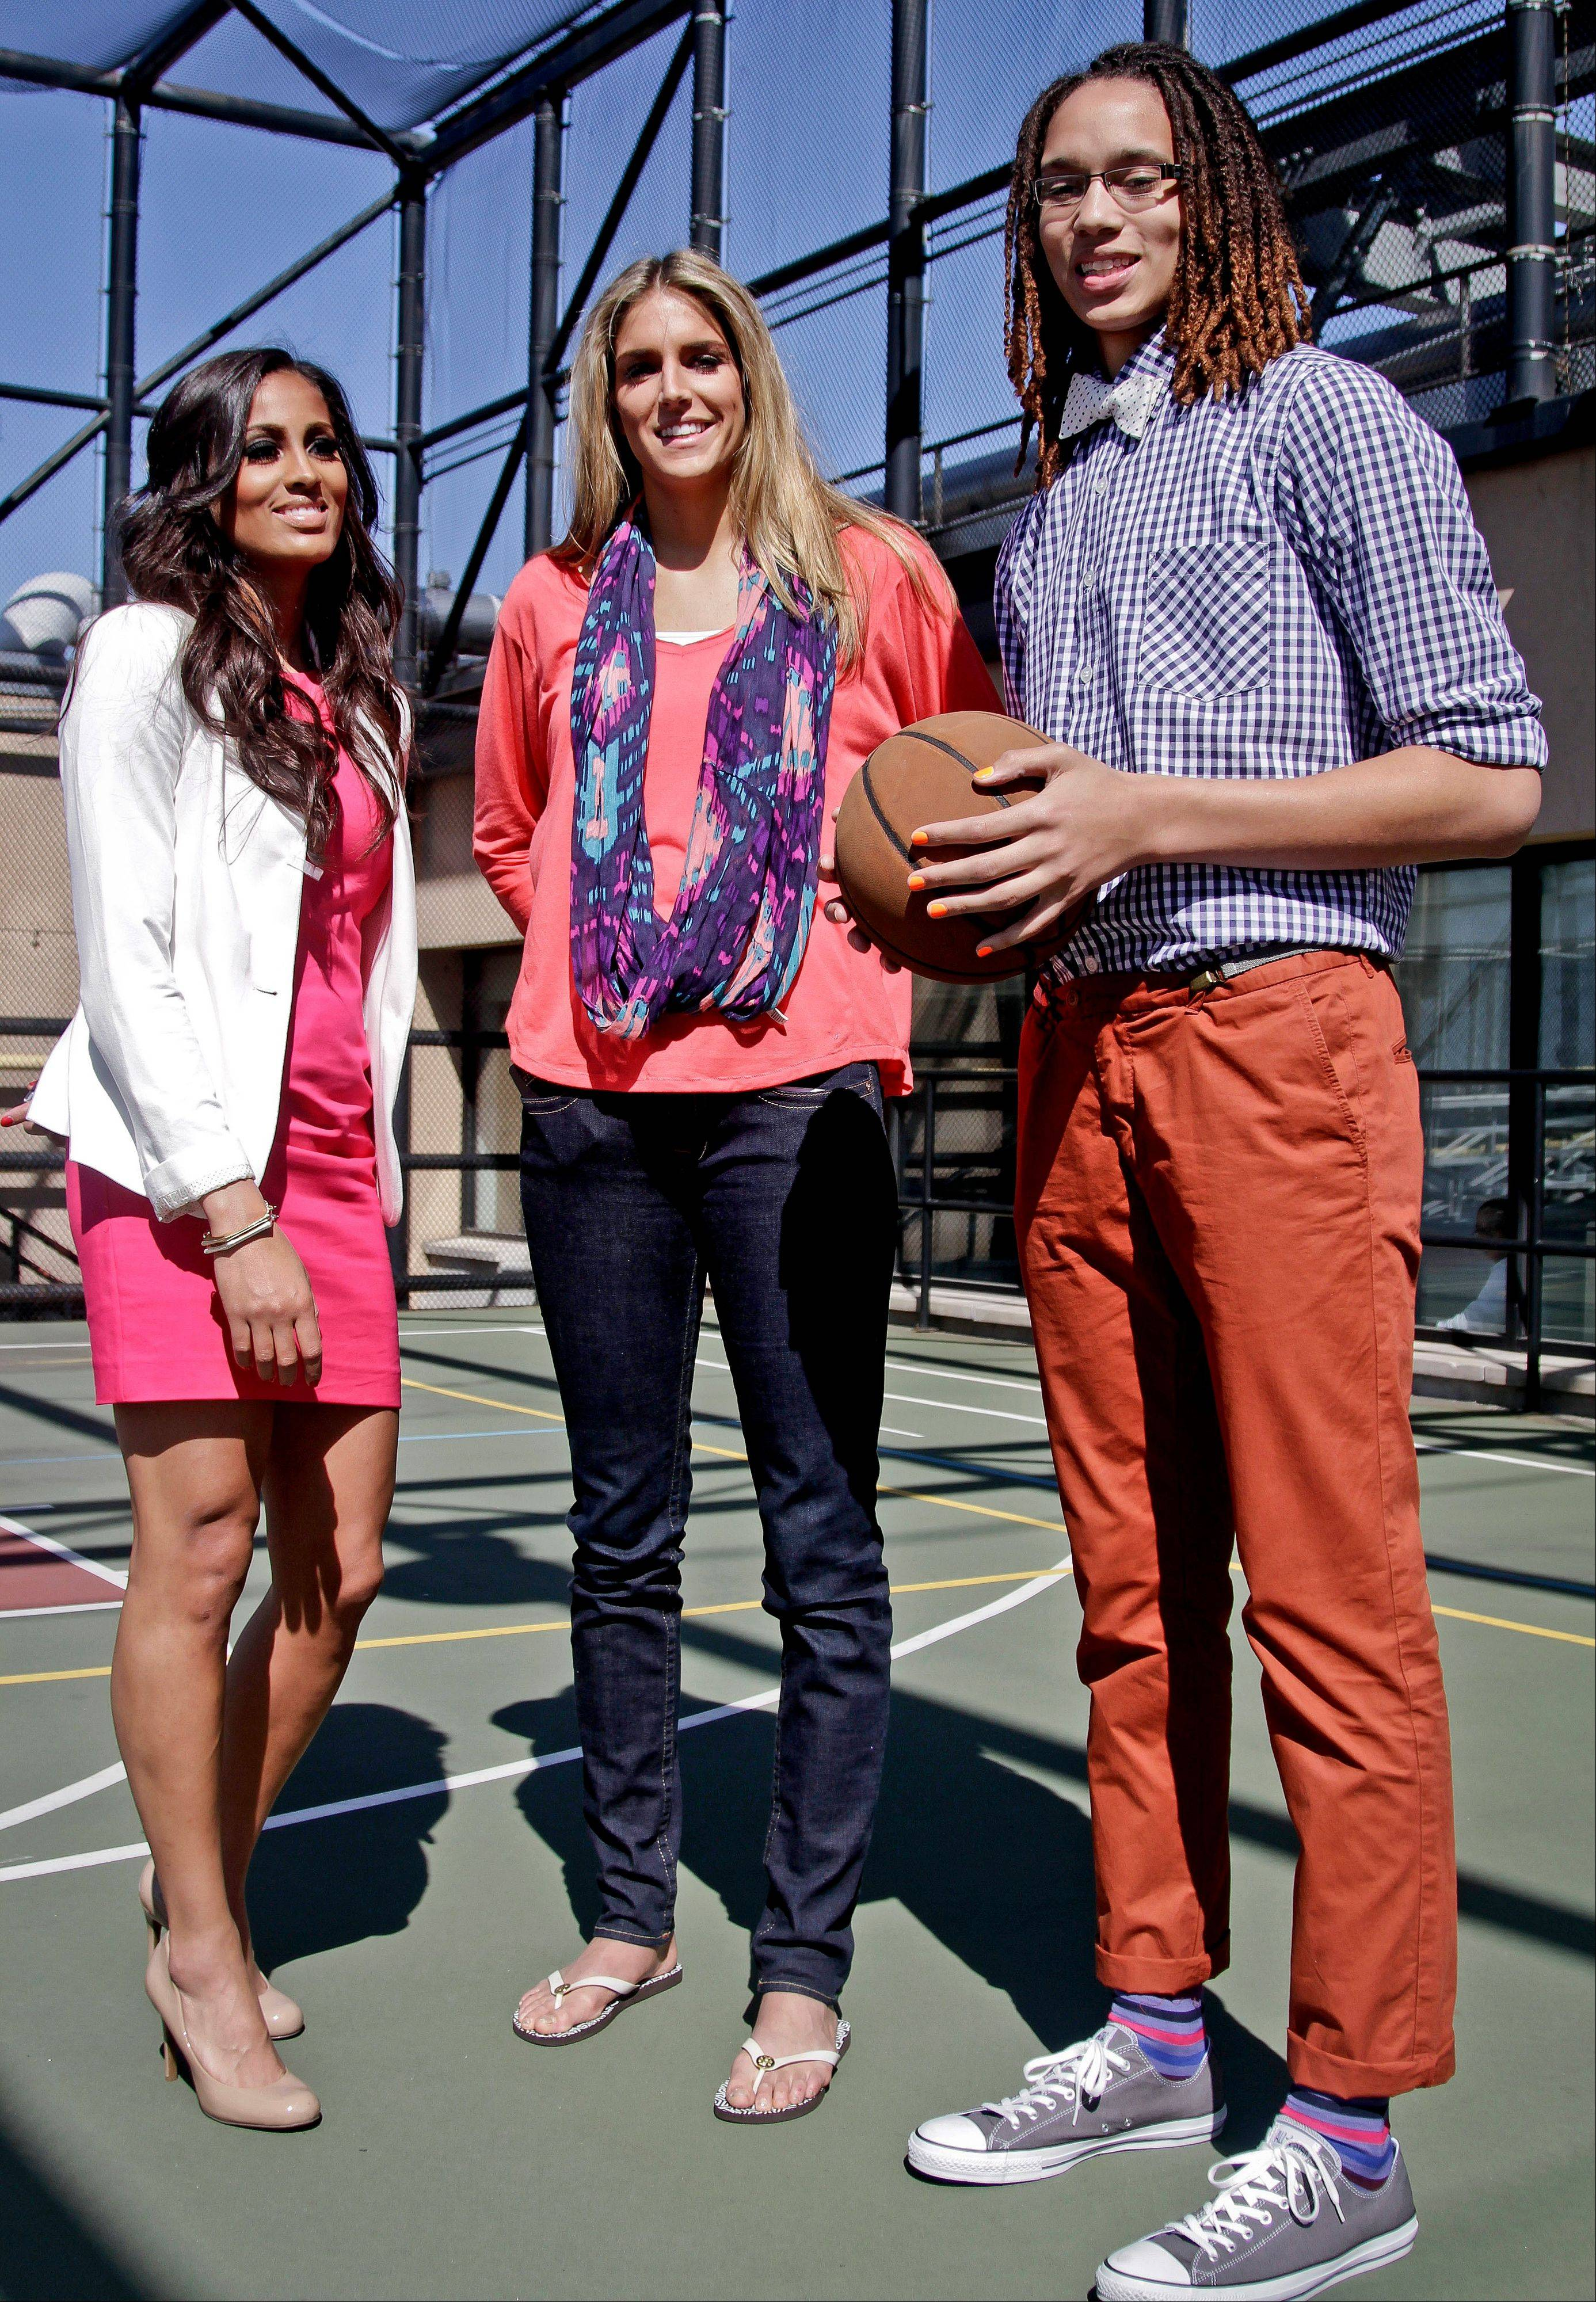 Notre Dame's Skylar Diggins, left, Delaware's Elena Delle Donne and Baylor's Brittney Griner were the third, second and first picks in this year's WNBA draft. Diggins will play for Tulsa, Delle Donne for the Sky and Griner for Phoenix.